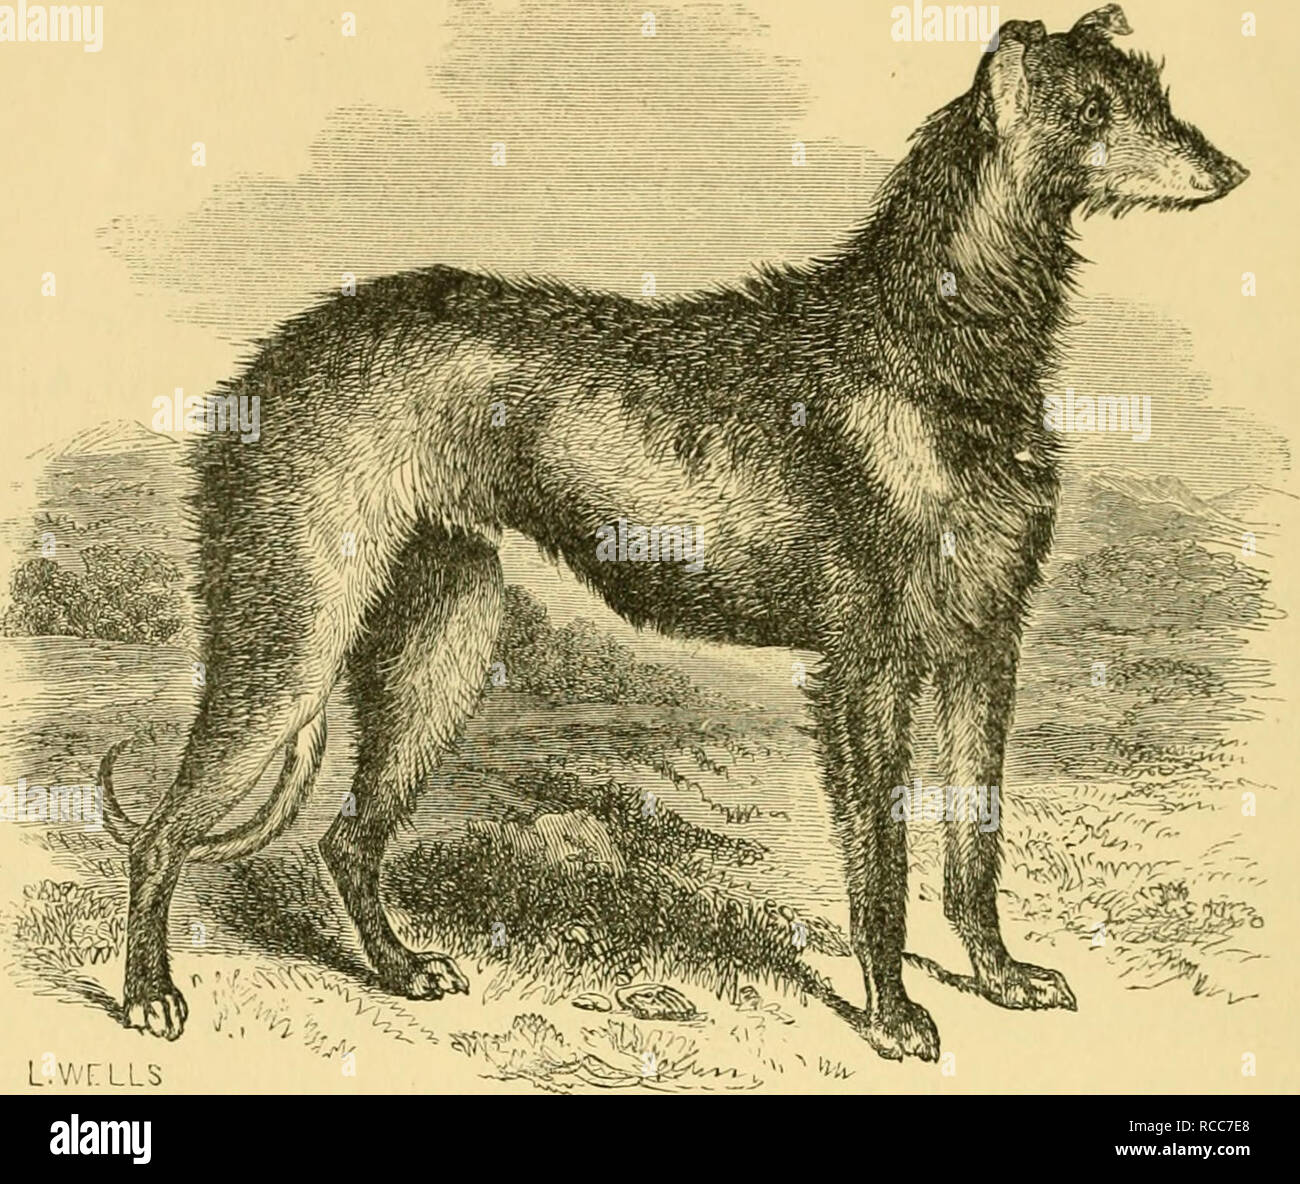 """. The dog in health and disease : comprising the various modes of breaking and using him for hunting, coursing, shooting, etc., and including the points or characteristics of toy dogs. Dogs; Dogs -- Diseases. L.VvTLLS """" C'ADEii."""" A Deerhound of the pure Glengarry breed, 28 inohos high, 34 inches in girth. Bred by W. ^leredith, Esq., Torrish, Sutherland. CHAPTER II. DOMESTICATED DOGS HUNTING CHIEFLY BY THE EYE, AND KILLING THEIR GAME FOR MAN'S USE. The Rough Scotch Grevhound and Deerhouud.—The Smooth or English Greyhound.—The Gazehound.—Tlie Irish Greyhound, or Wolf-dog.—The French Ma Stock Photo"""